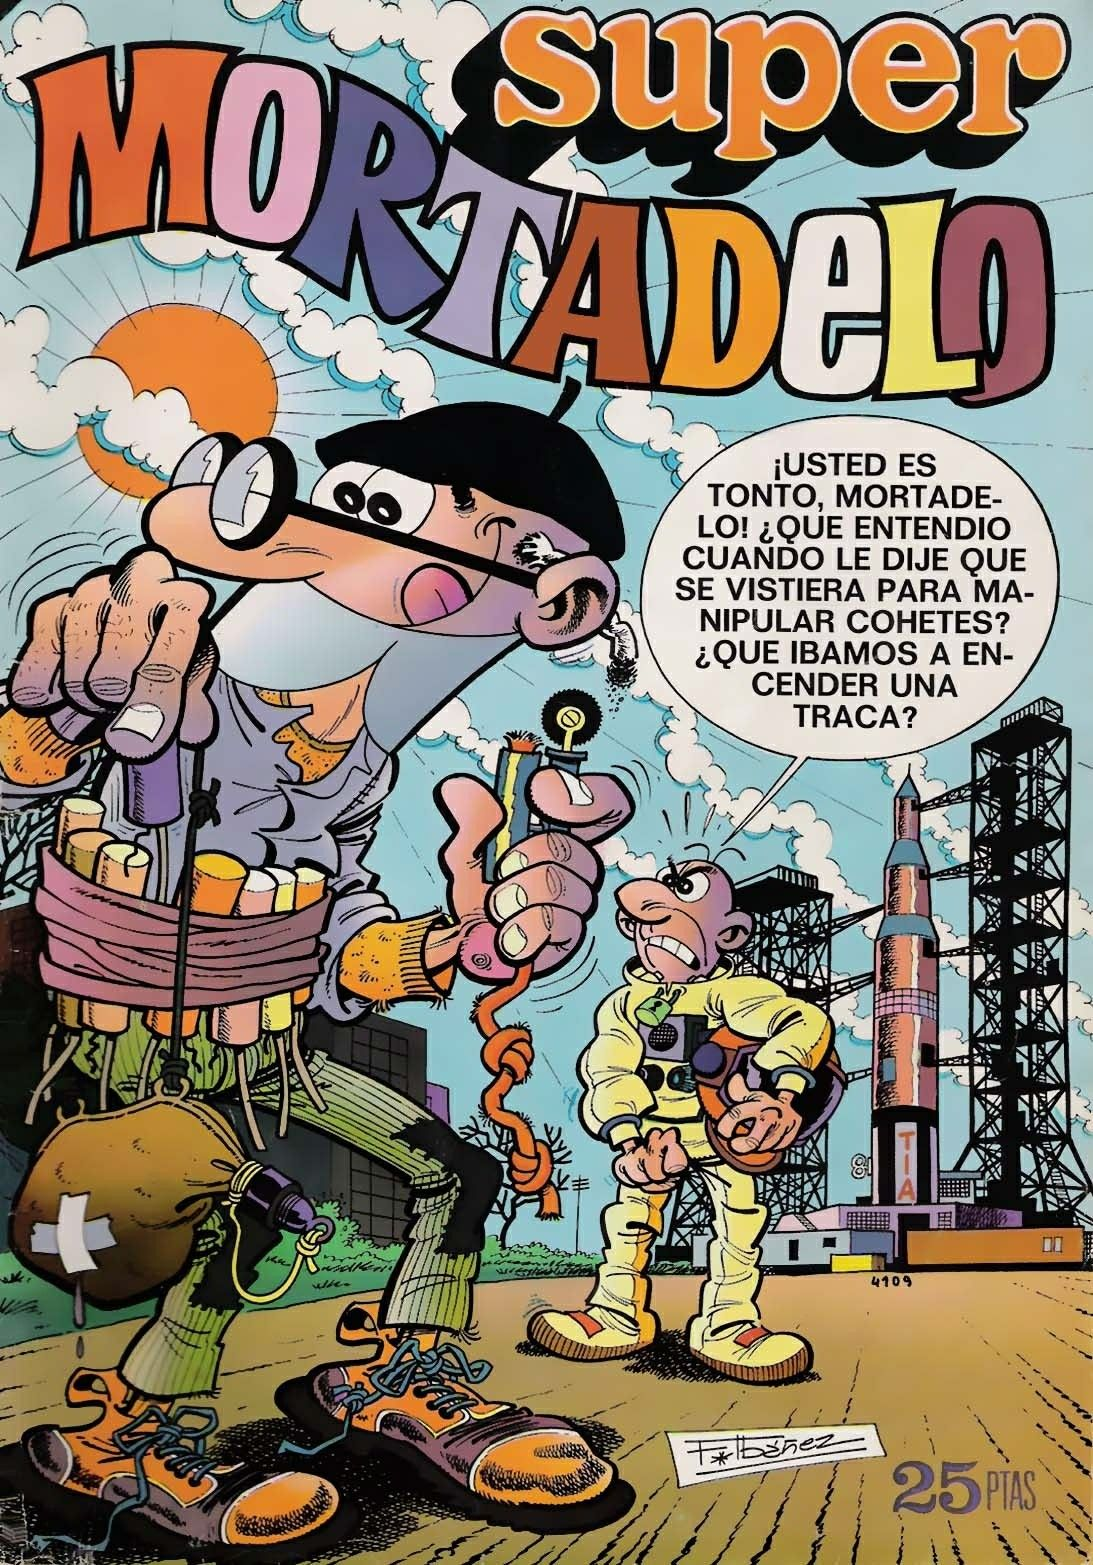 Super Mortadelo 47 Mortadelo Y Filemon Comics Historieta Espanola Mortadelo Y Filemon